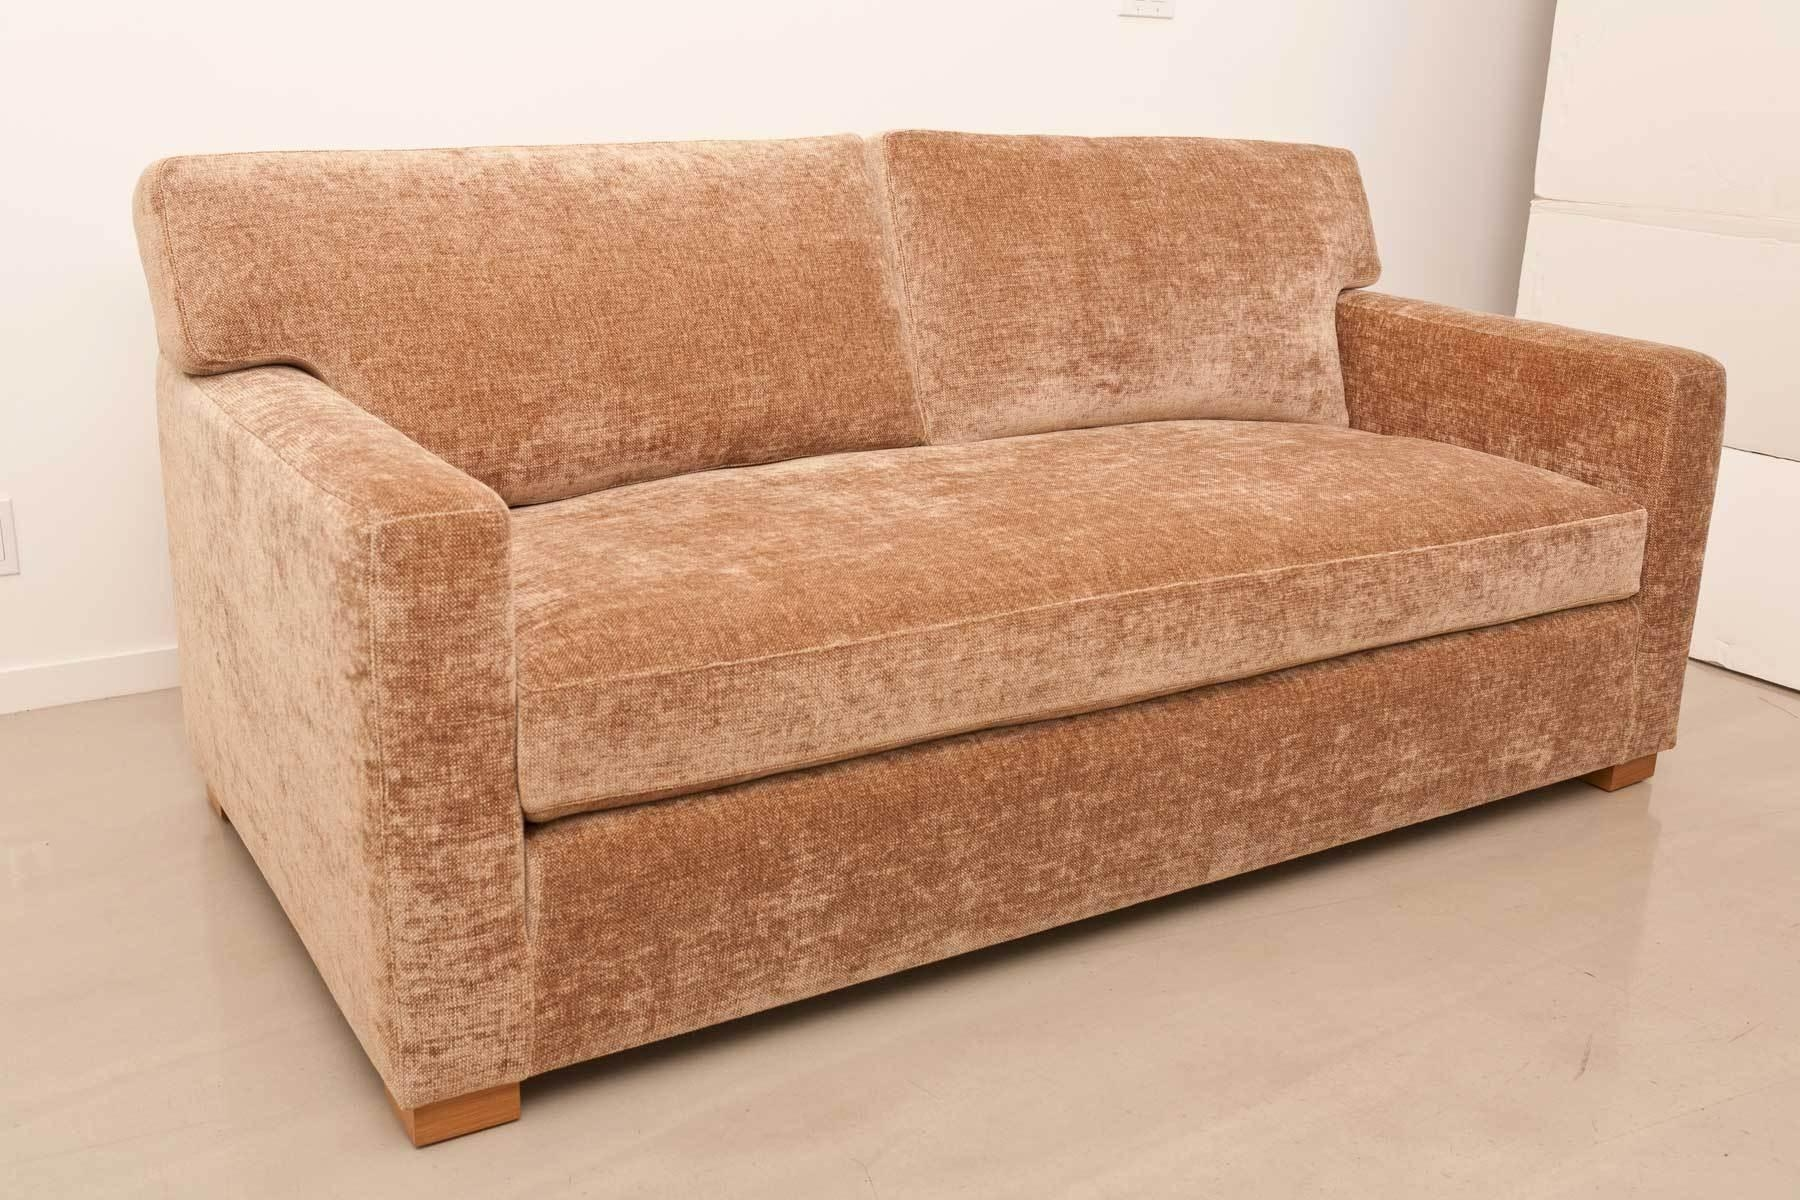 Cushions For Couch | Cushions Decoration Pertaining To One Cushion Sofas (View 13 of 20)